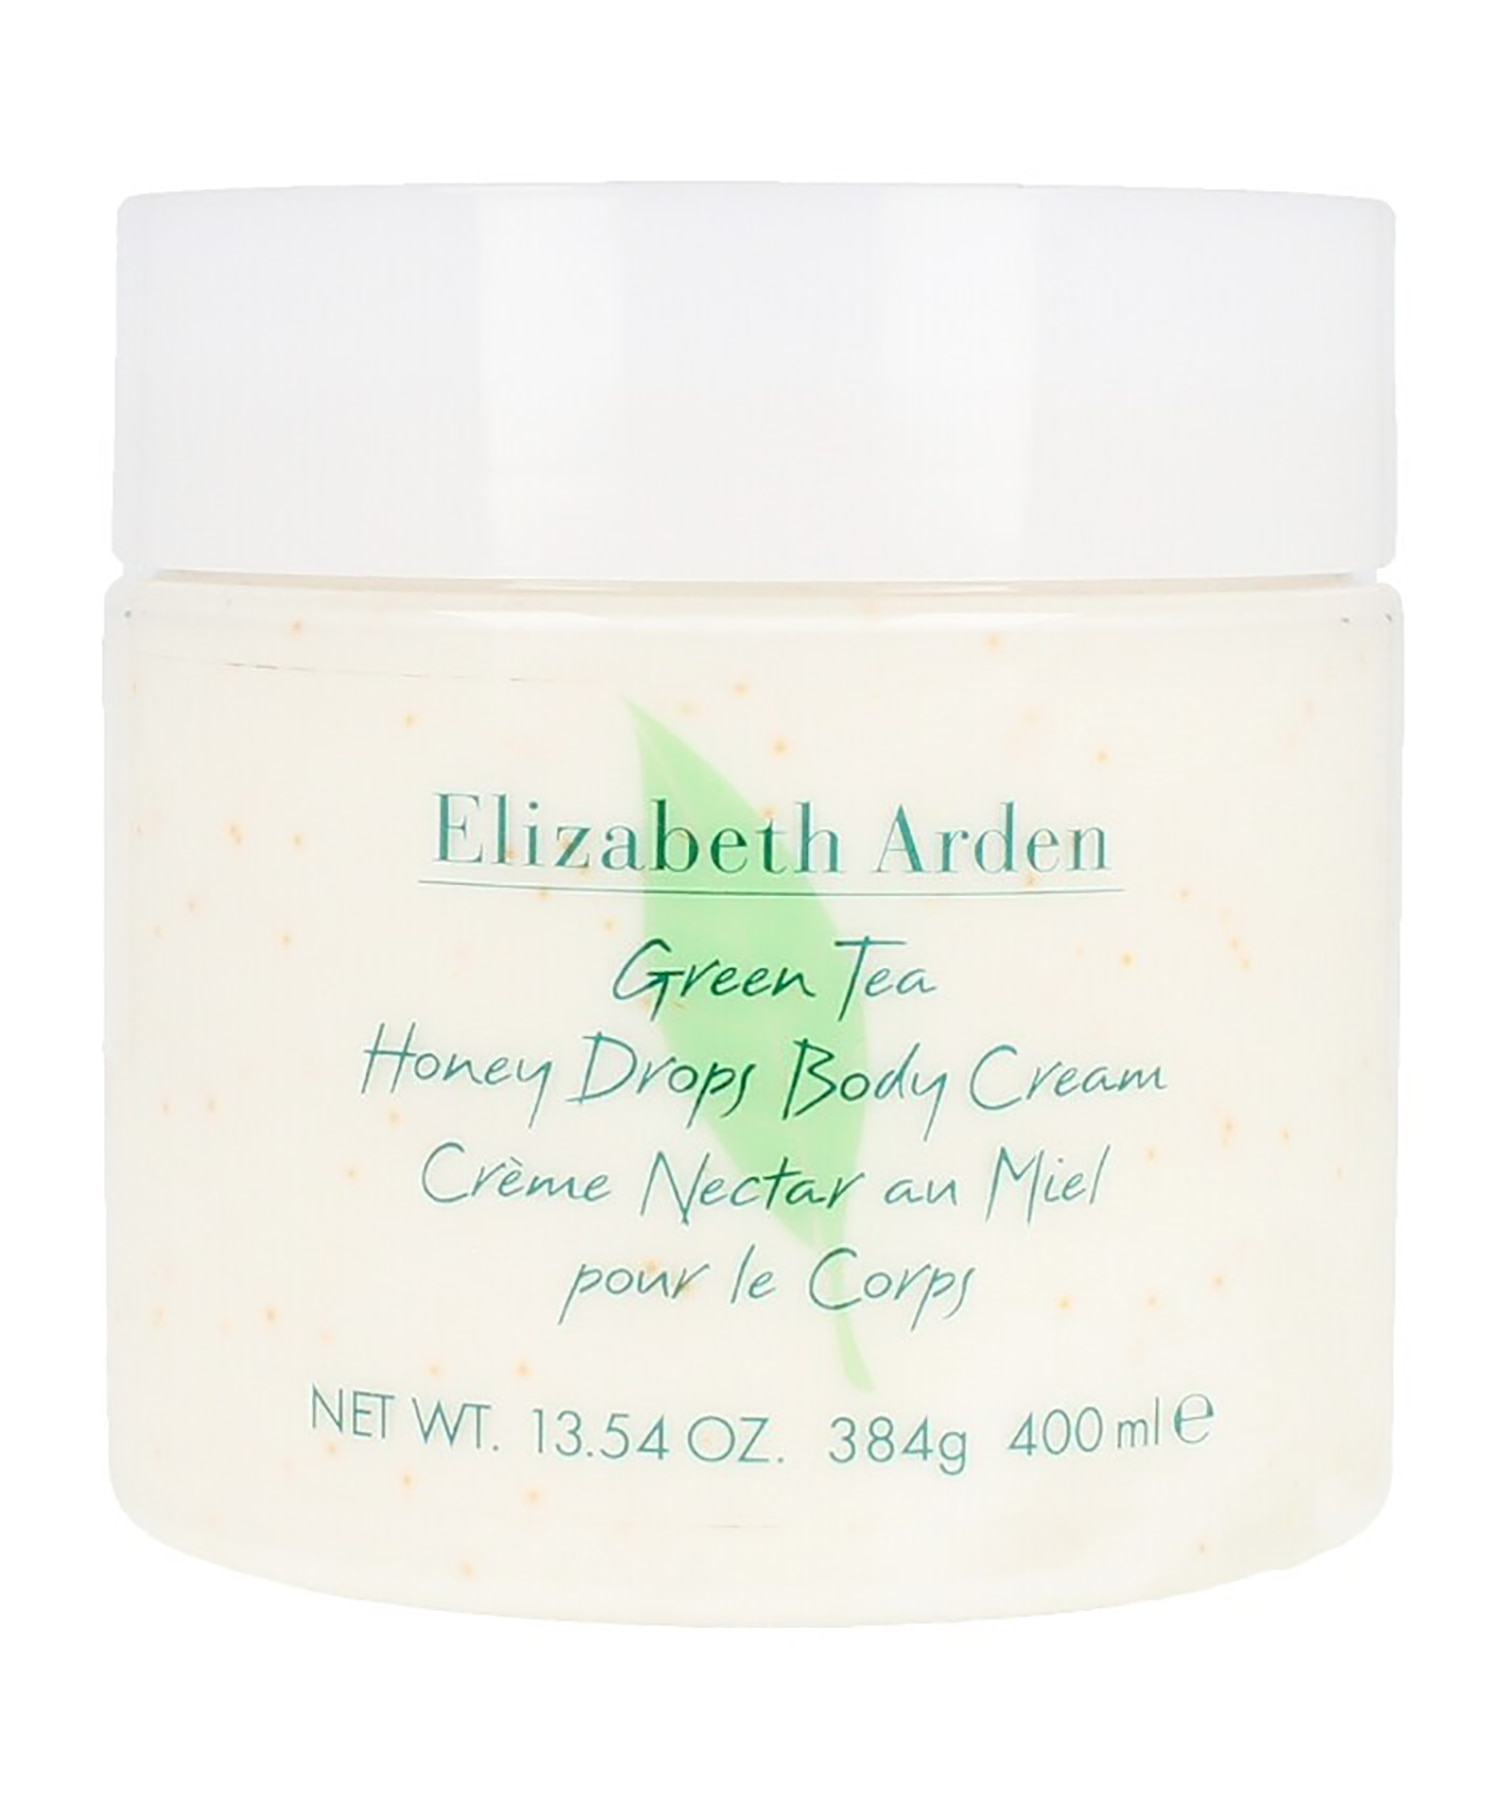 Elizabeth Arden Green Tea Body Cream